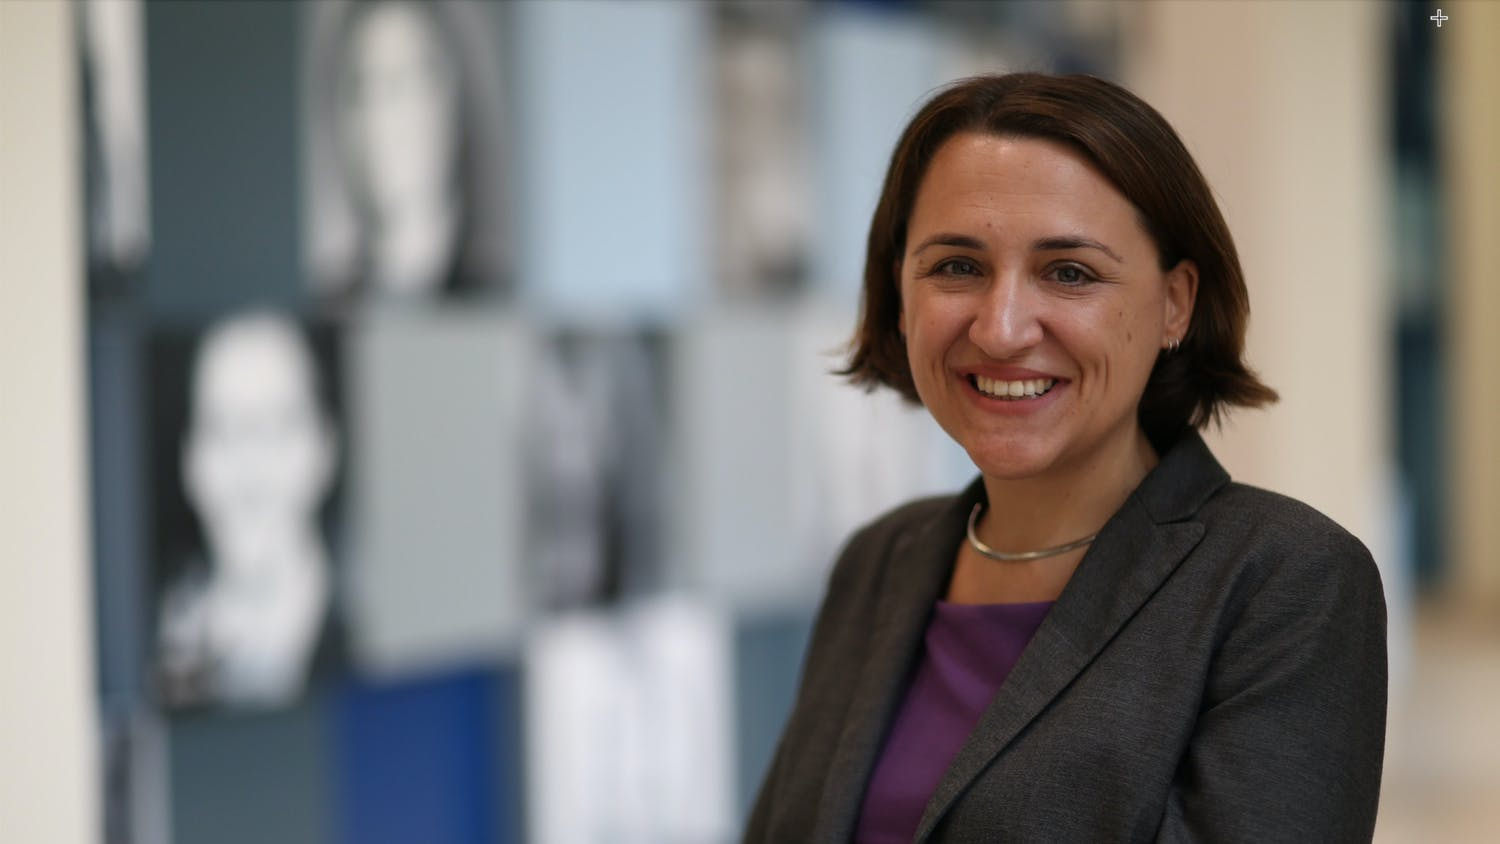 Erica Studer-Byrnes, the assistant dean and director of the Warrington College of Business.